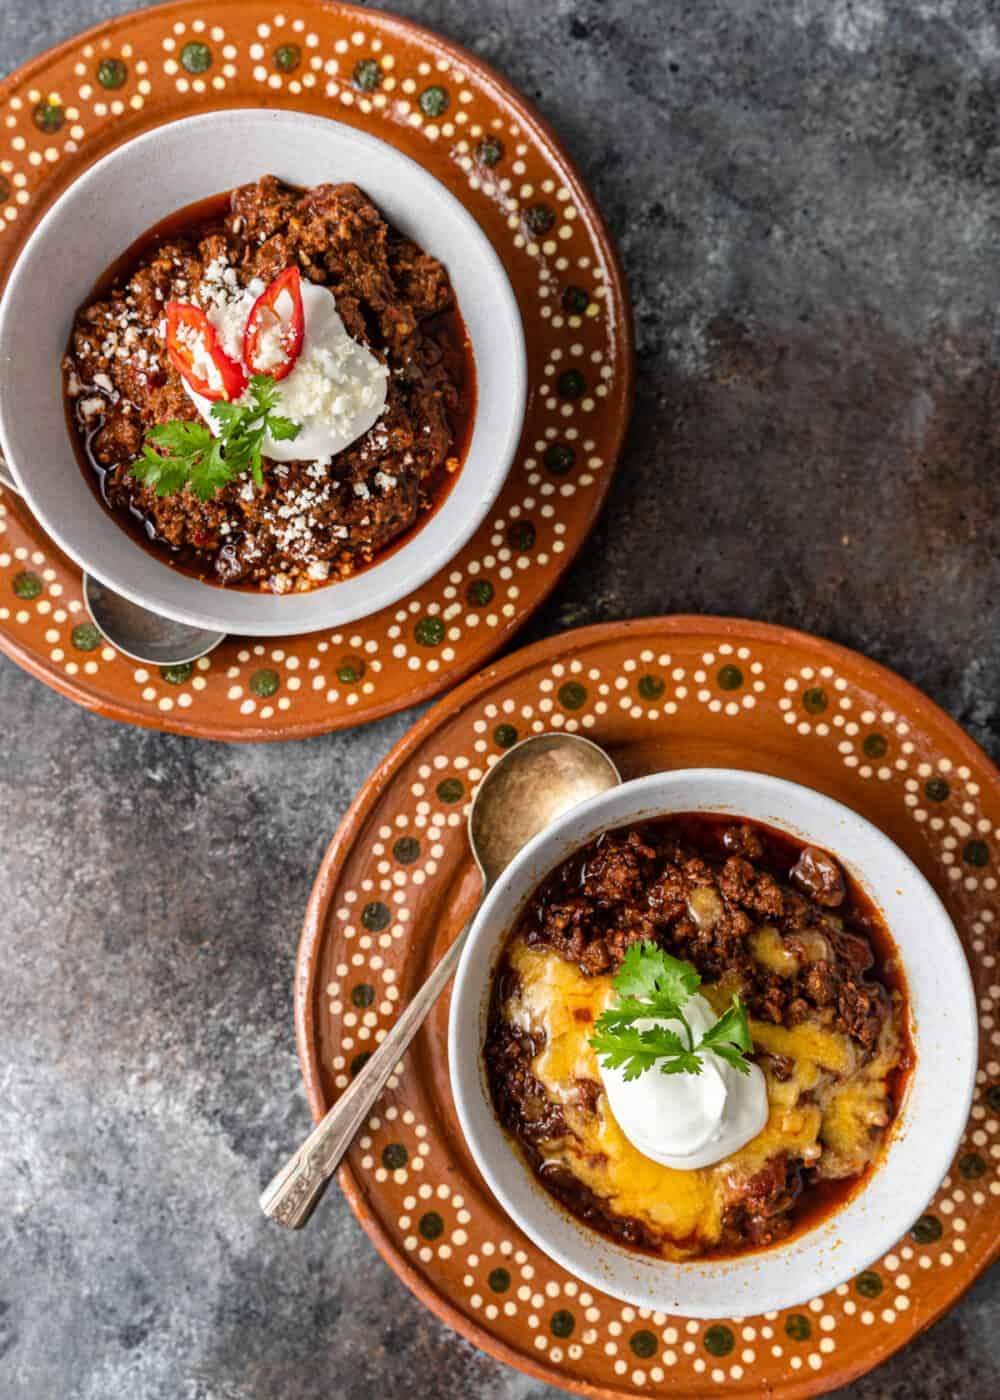 overhead: 2 bowls of five alarm chili side by side on glazed pottery plates